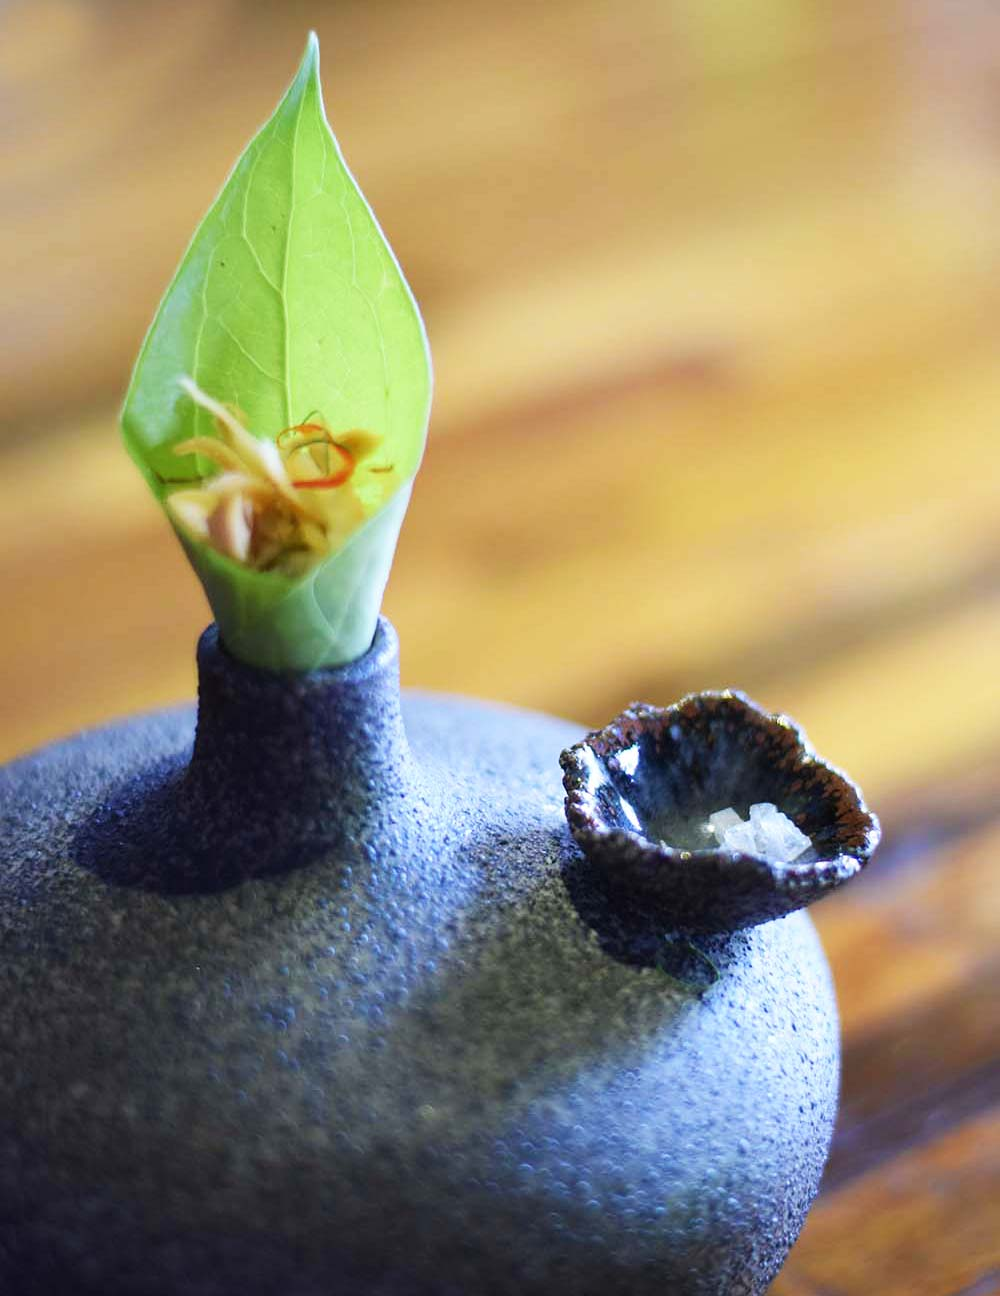 One of the beautifully presented bite-sized canapes served at Locavore in Ubud.